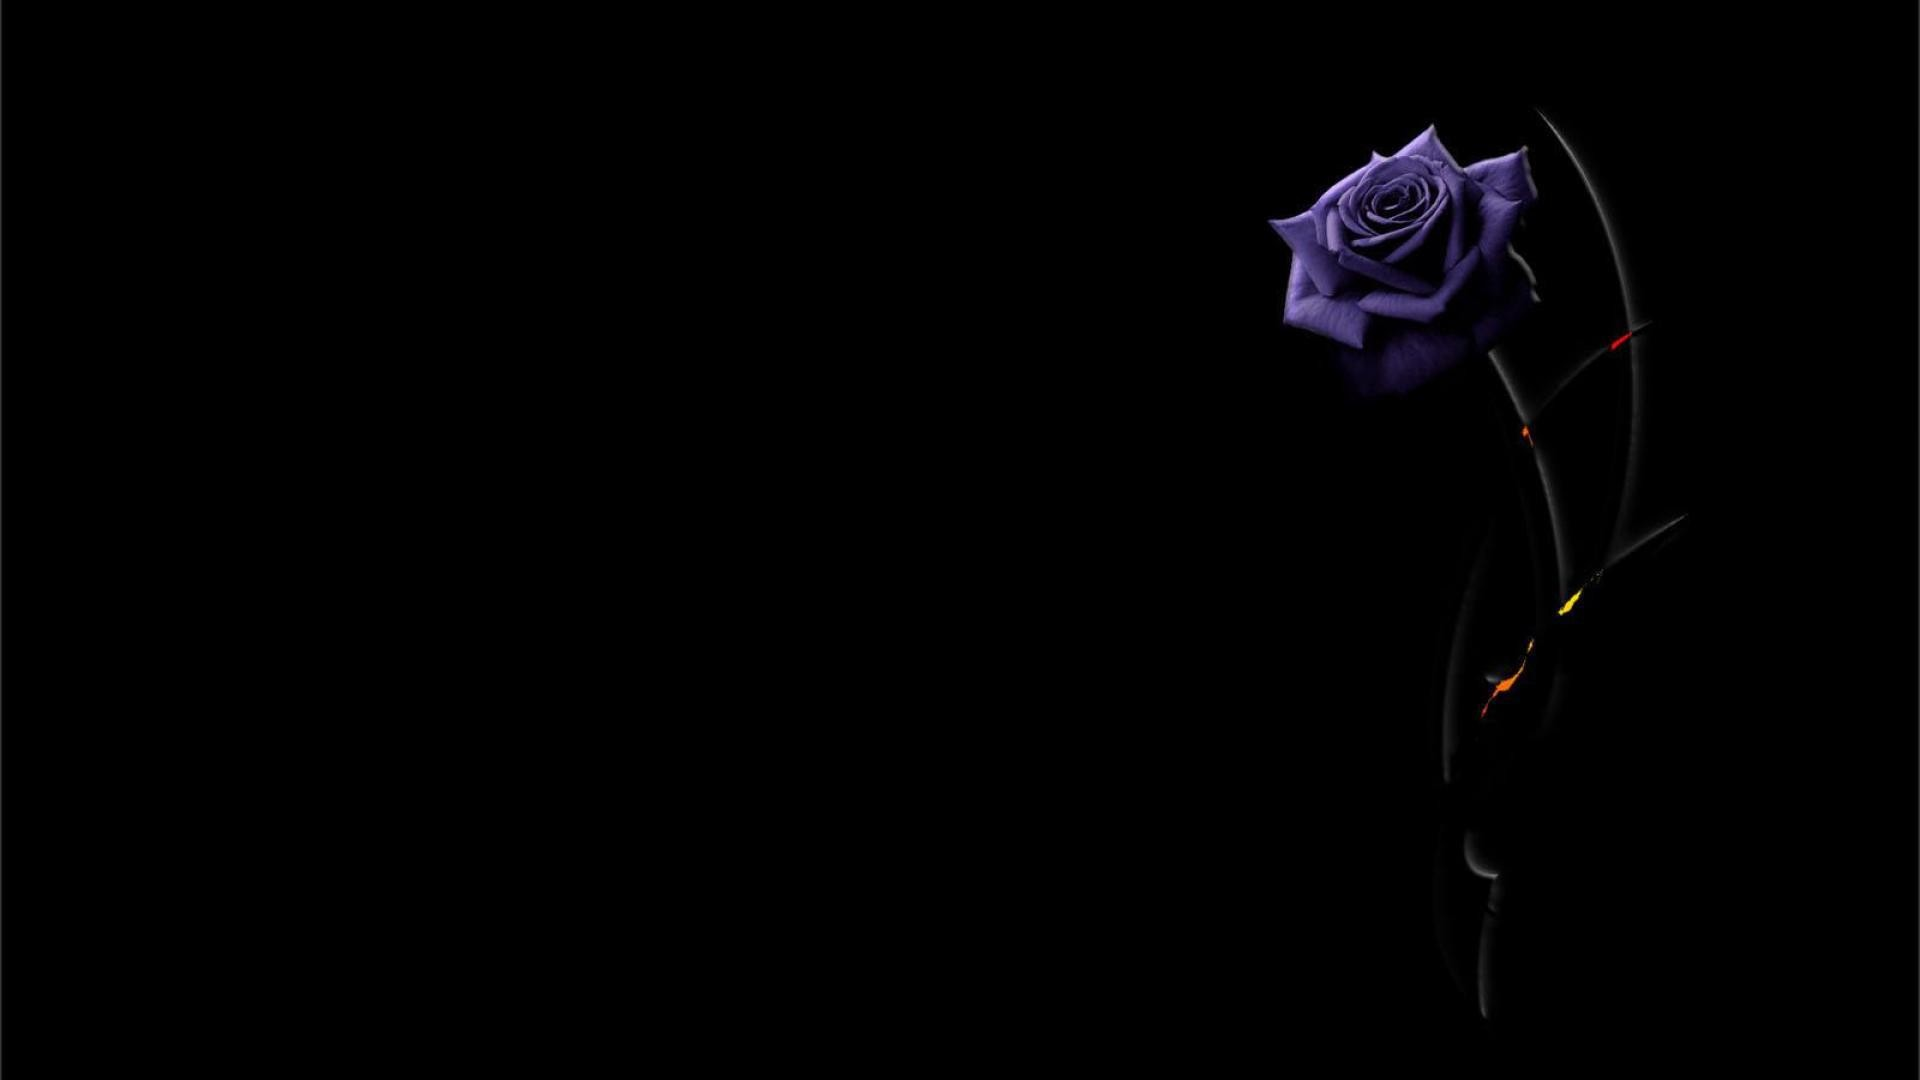 purple rose on a black background wallpapers and images – wallpapers .